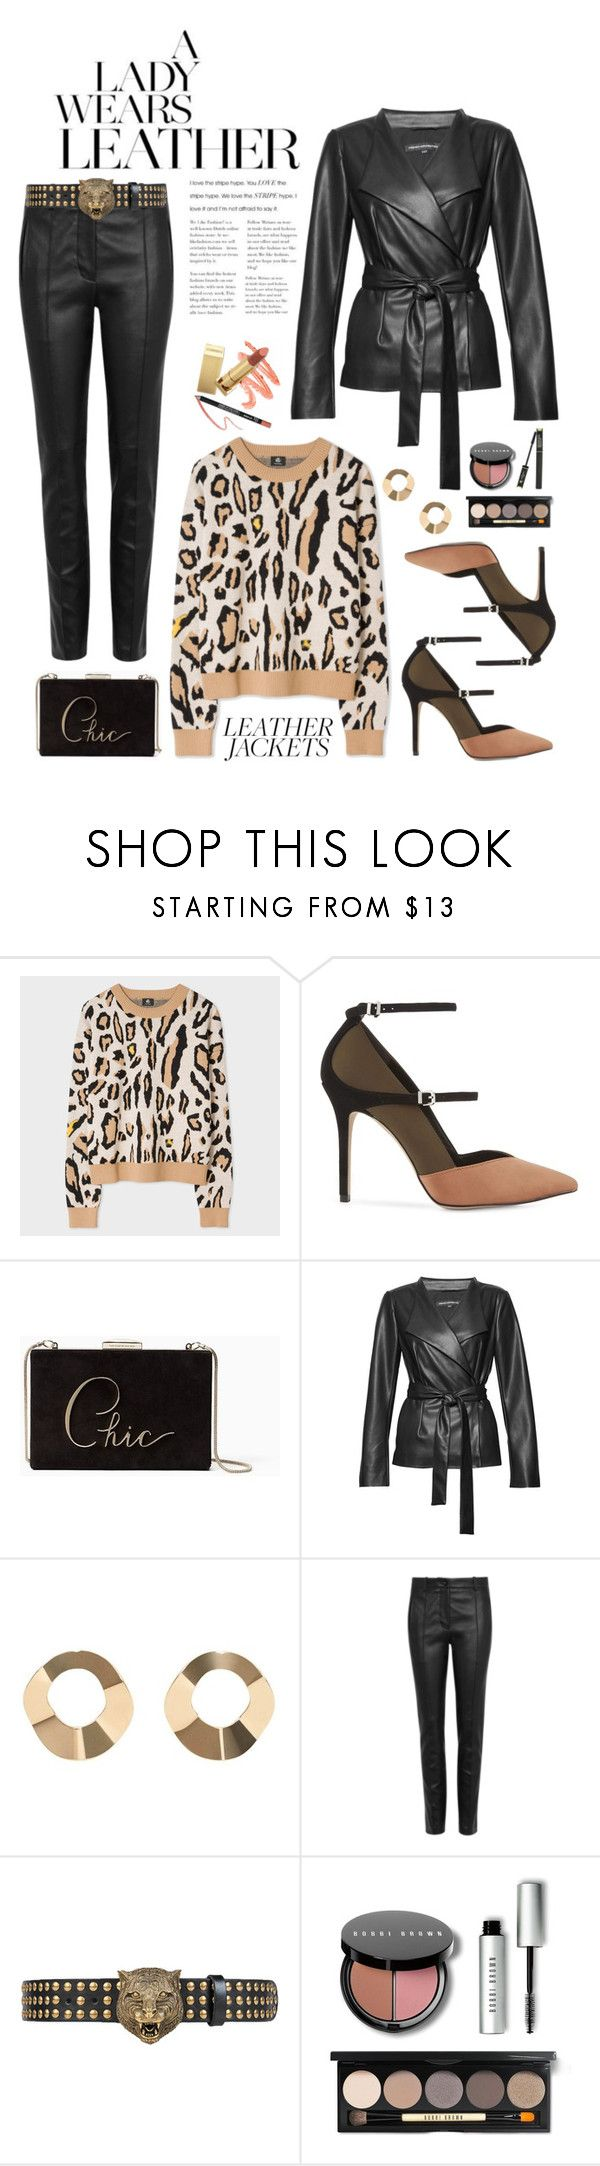 """""""Cool-Girl Style: Leather Jackets"""" by shortyluv718 ❤ liked on Polyvore featuring PS Paul Smith, Reiss, Kate Spade, French Connection, MANGO, Valentino, Gucci, Bobbi Brown Cosmetics, Lancôme and leatherjackets"""